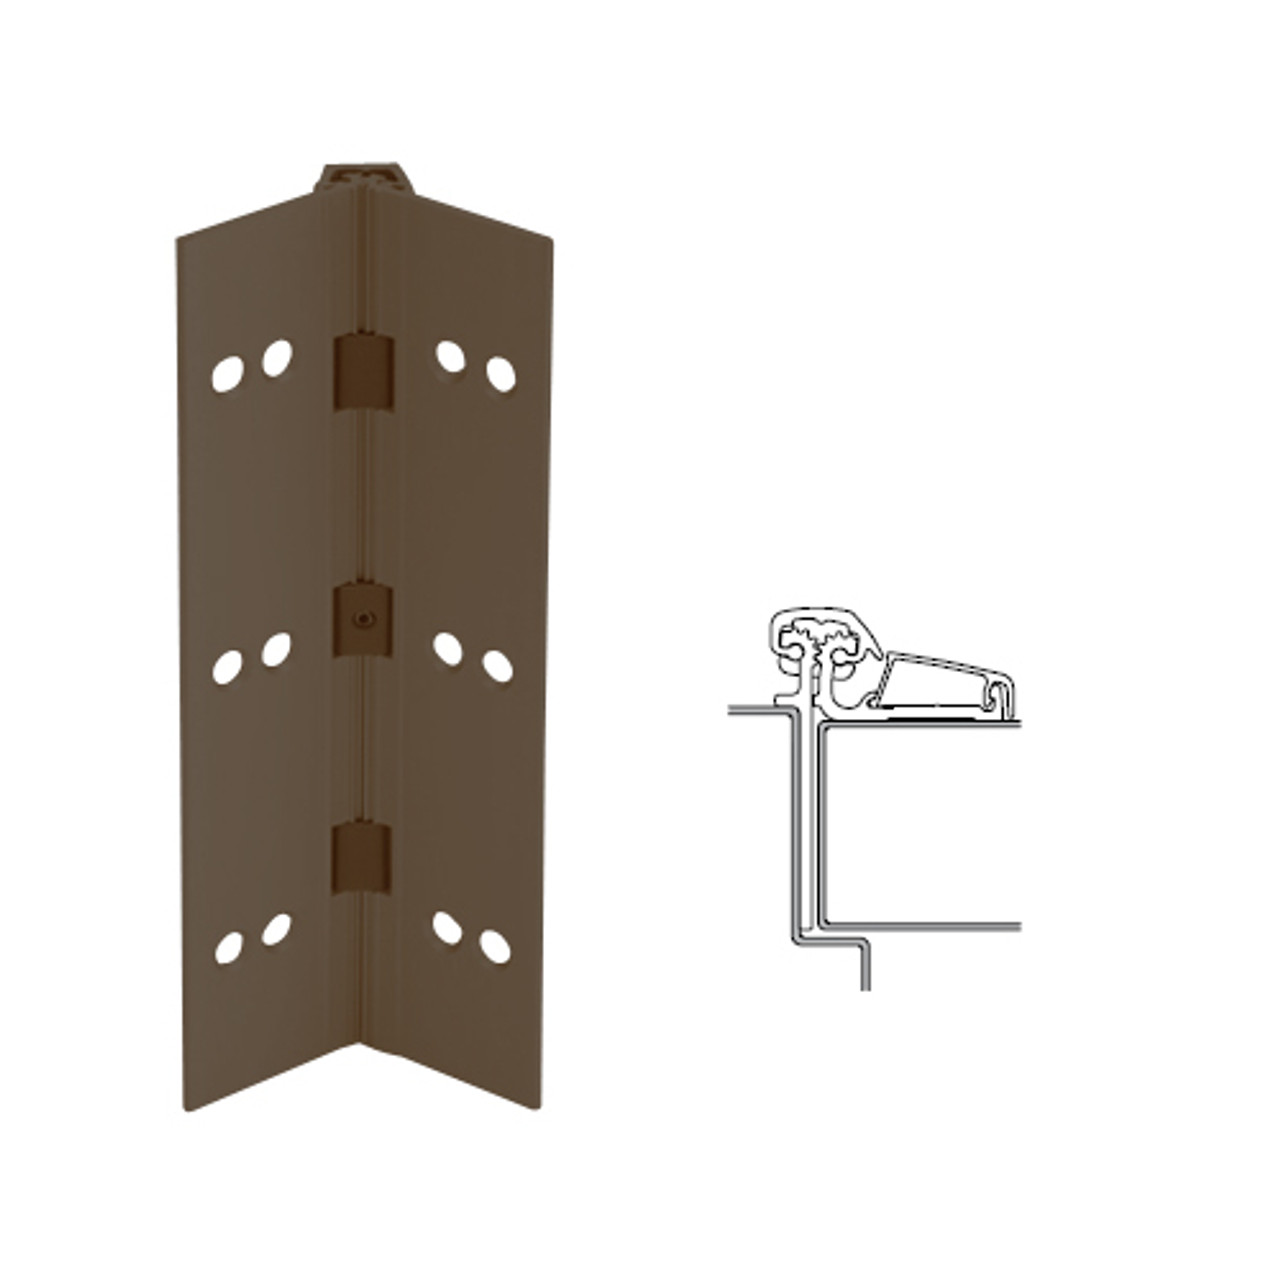 054XY-313AN-83-TF IVES Adjustable Half Surface Continuous Geared Hinges with Thread Forming Screws in Dark Bronze Anodized